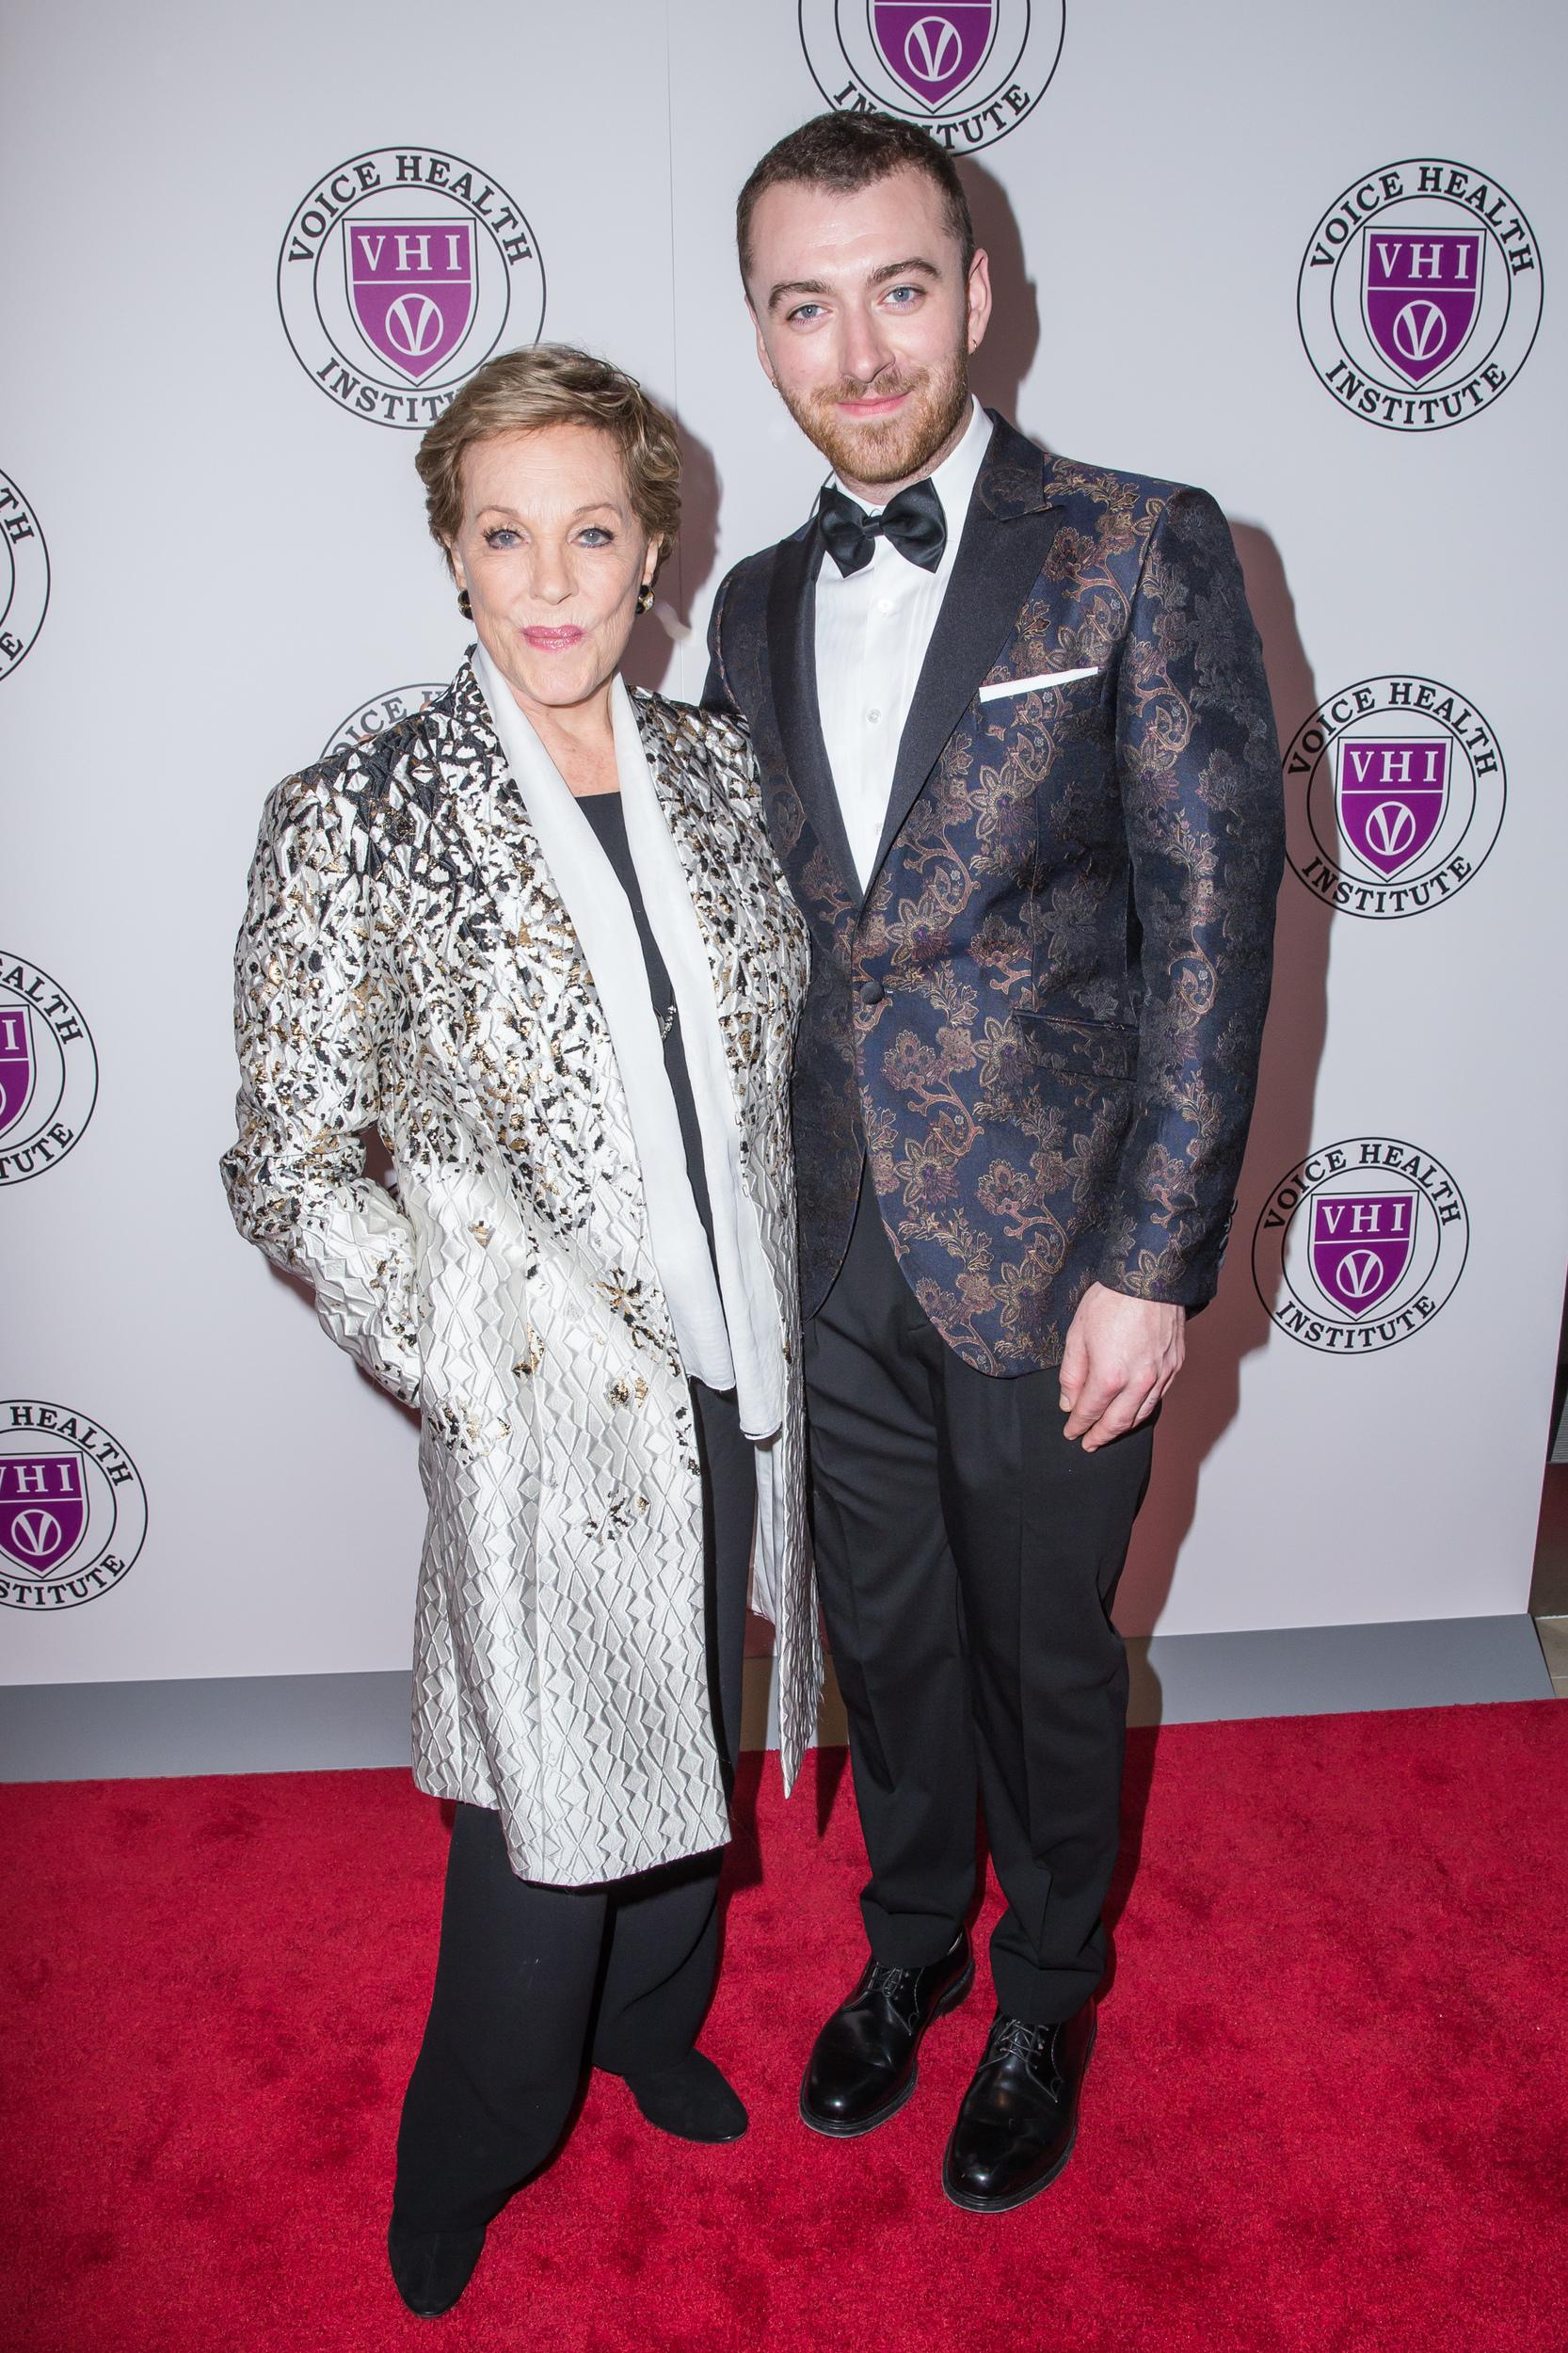 Singer Sam Smith and event honoree Julie Andrews attend the 'Raise Your Voice' concert honoring Julie Andrews at Alice Tully Hall, Lincoln Center on March 5, 2018 in New York, NY. (Photo by Joe Russo / Sipa USA)